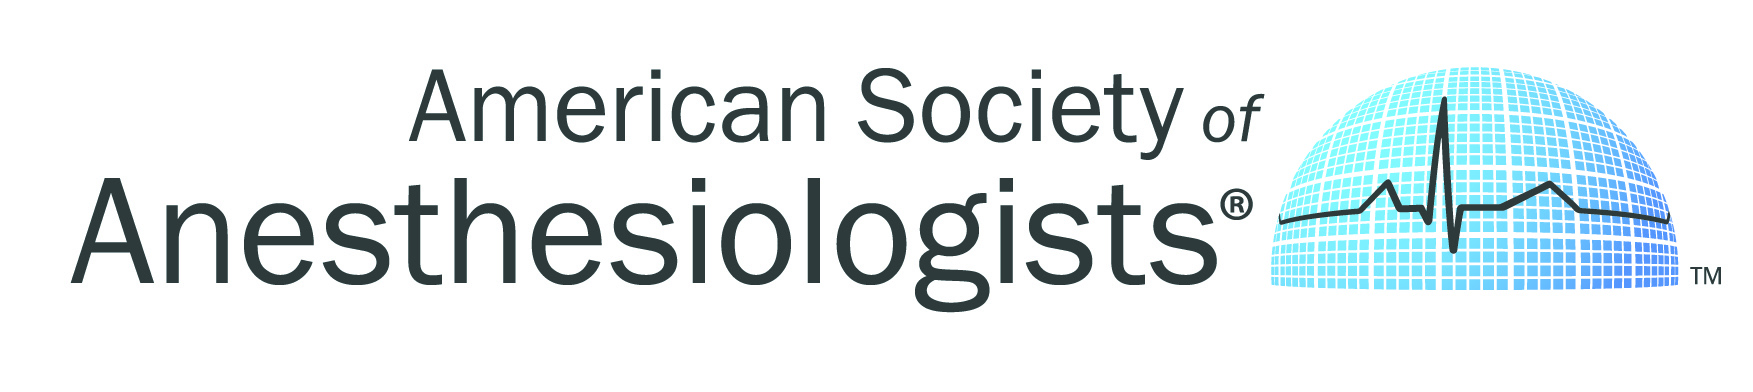 American Society of Anesthesiologists